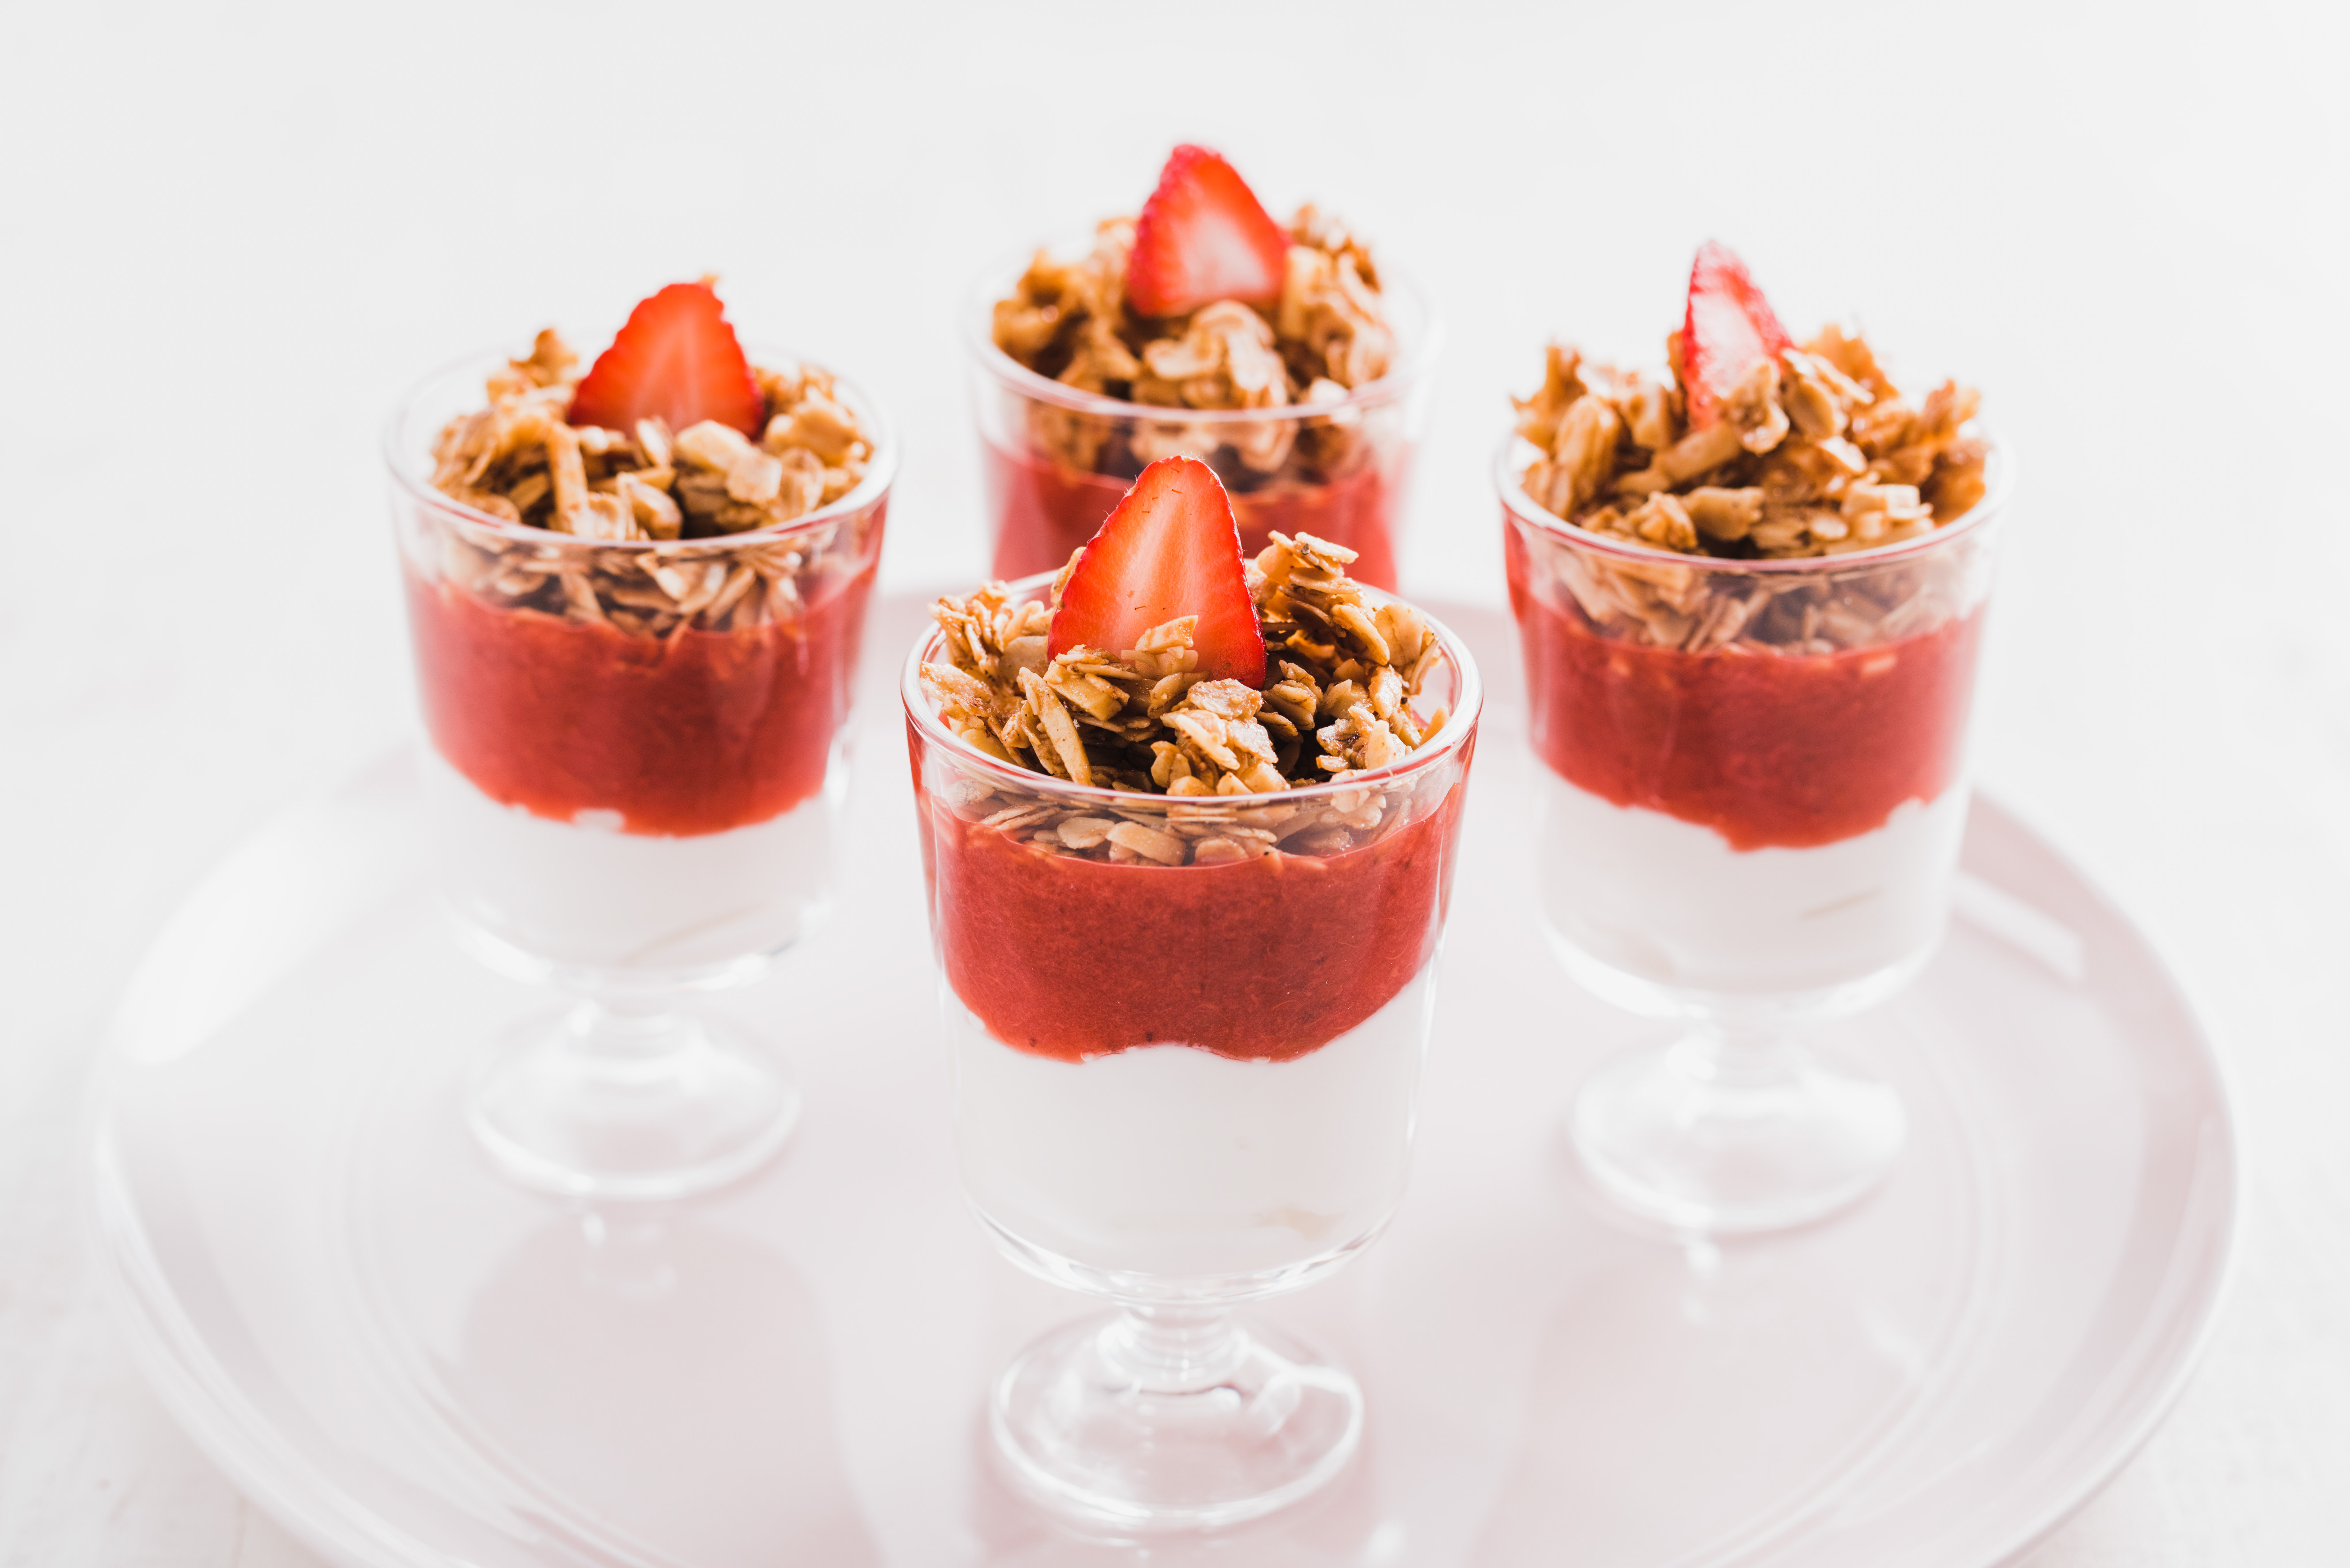 Yogurt and fruit parfaits with granola and strawberries set on a white plate